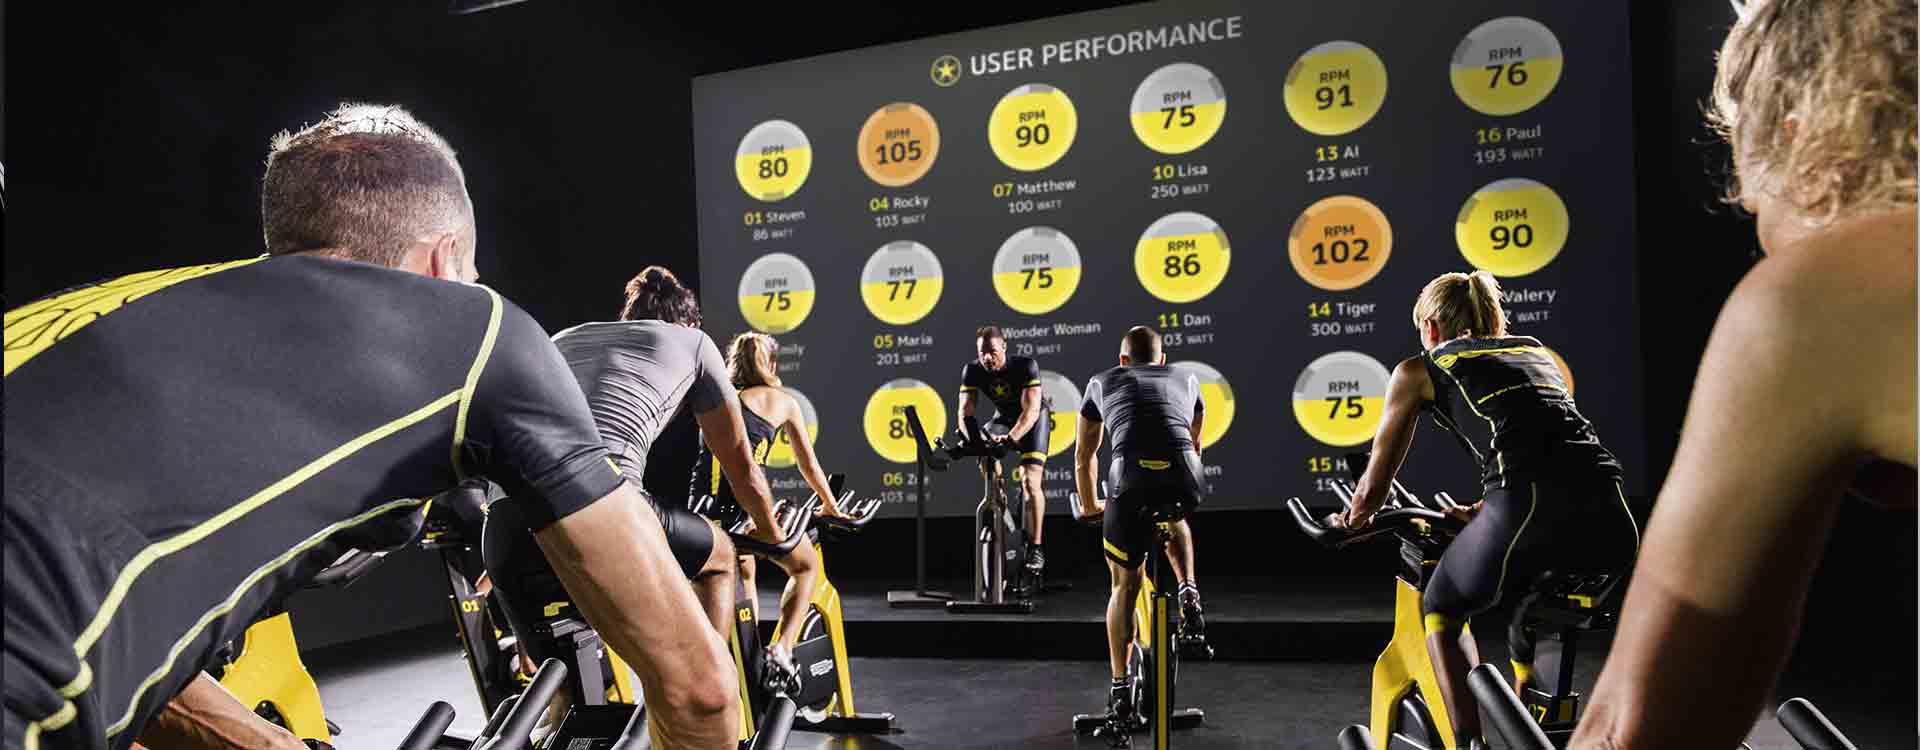 Bildresultat för group cycle technogym